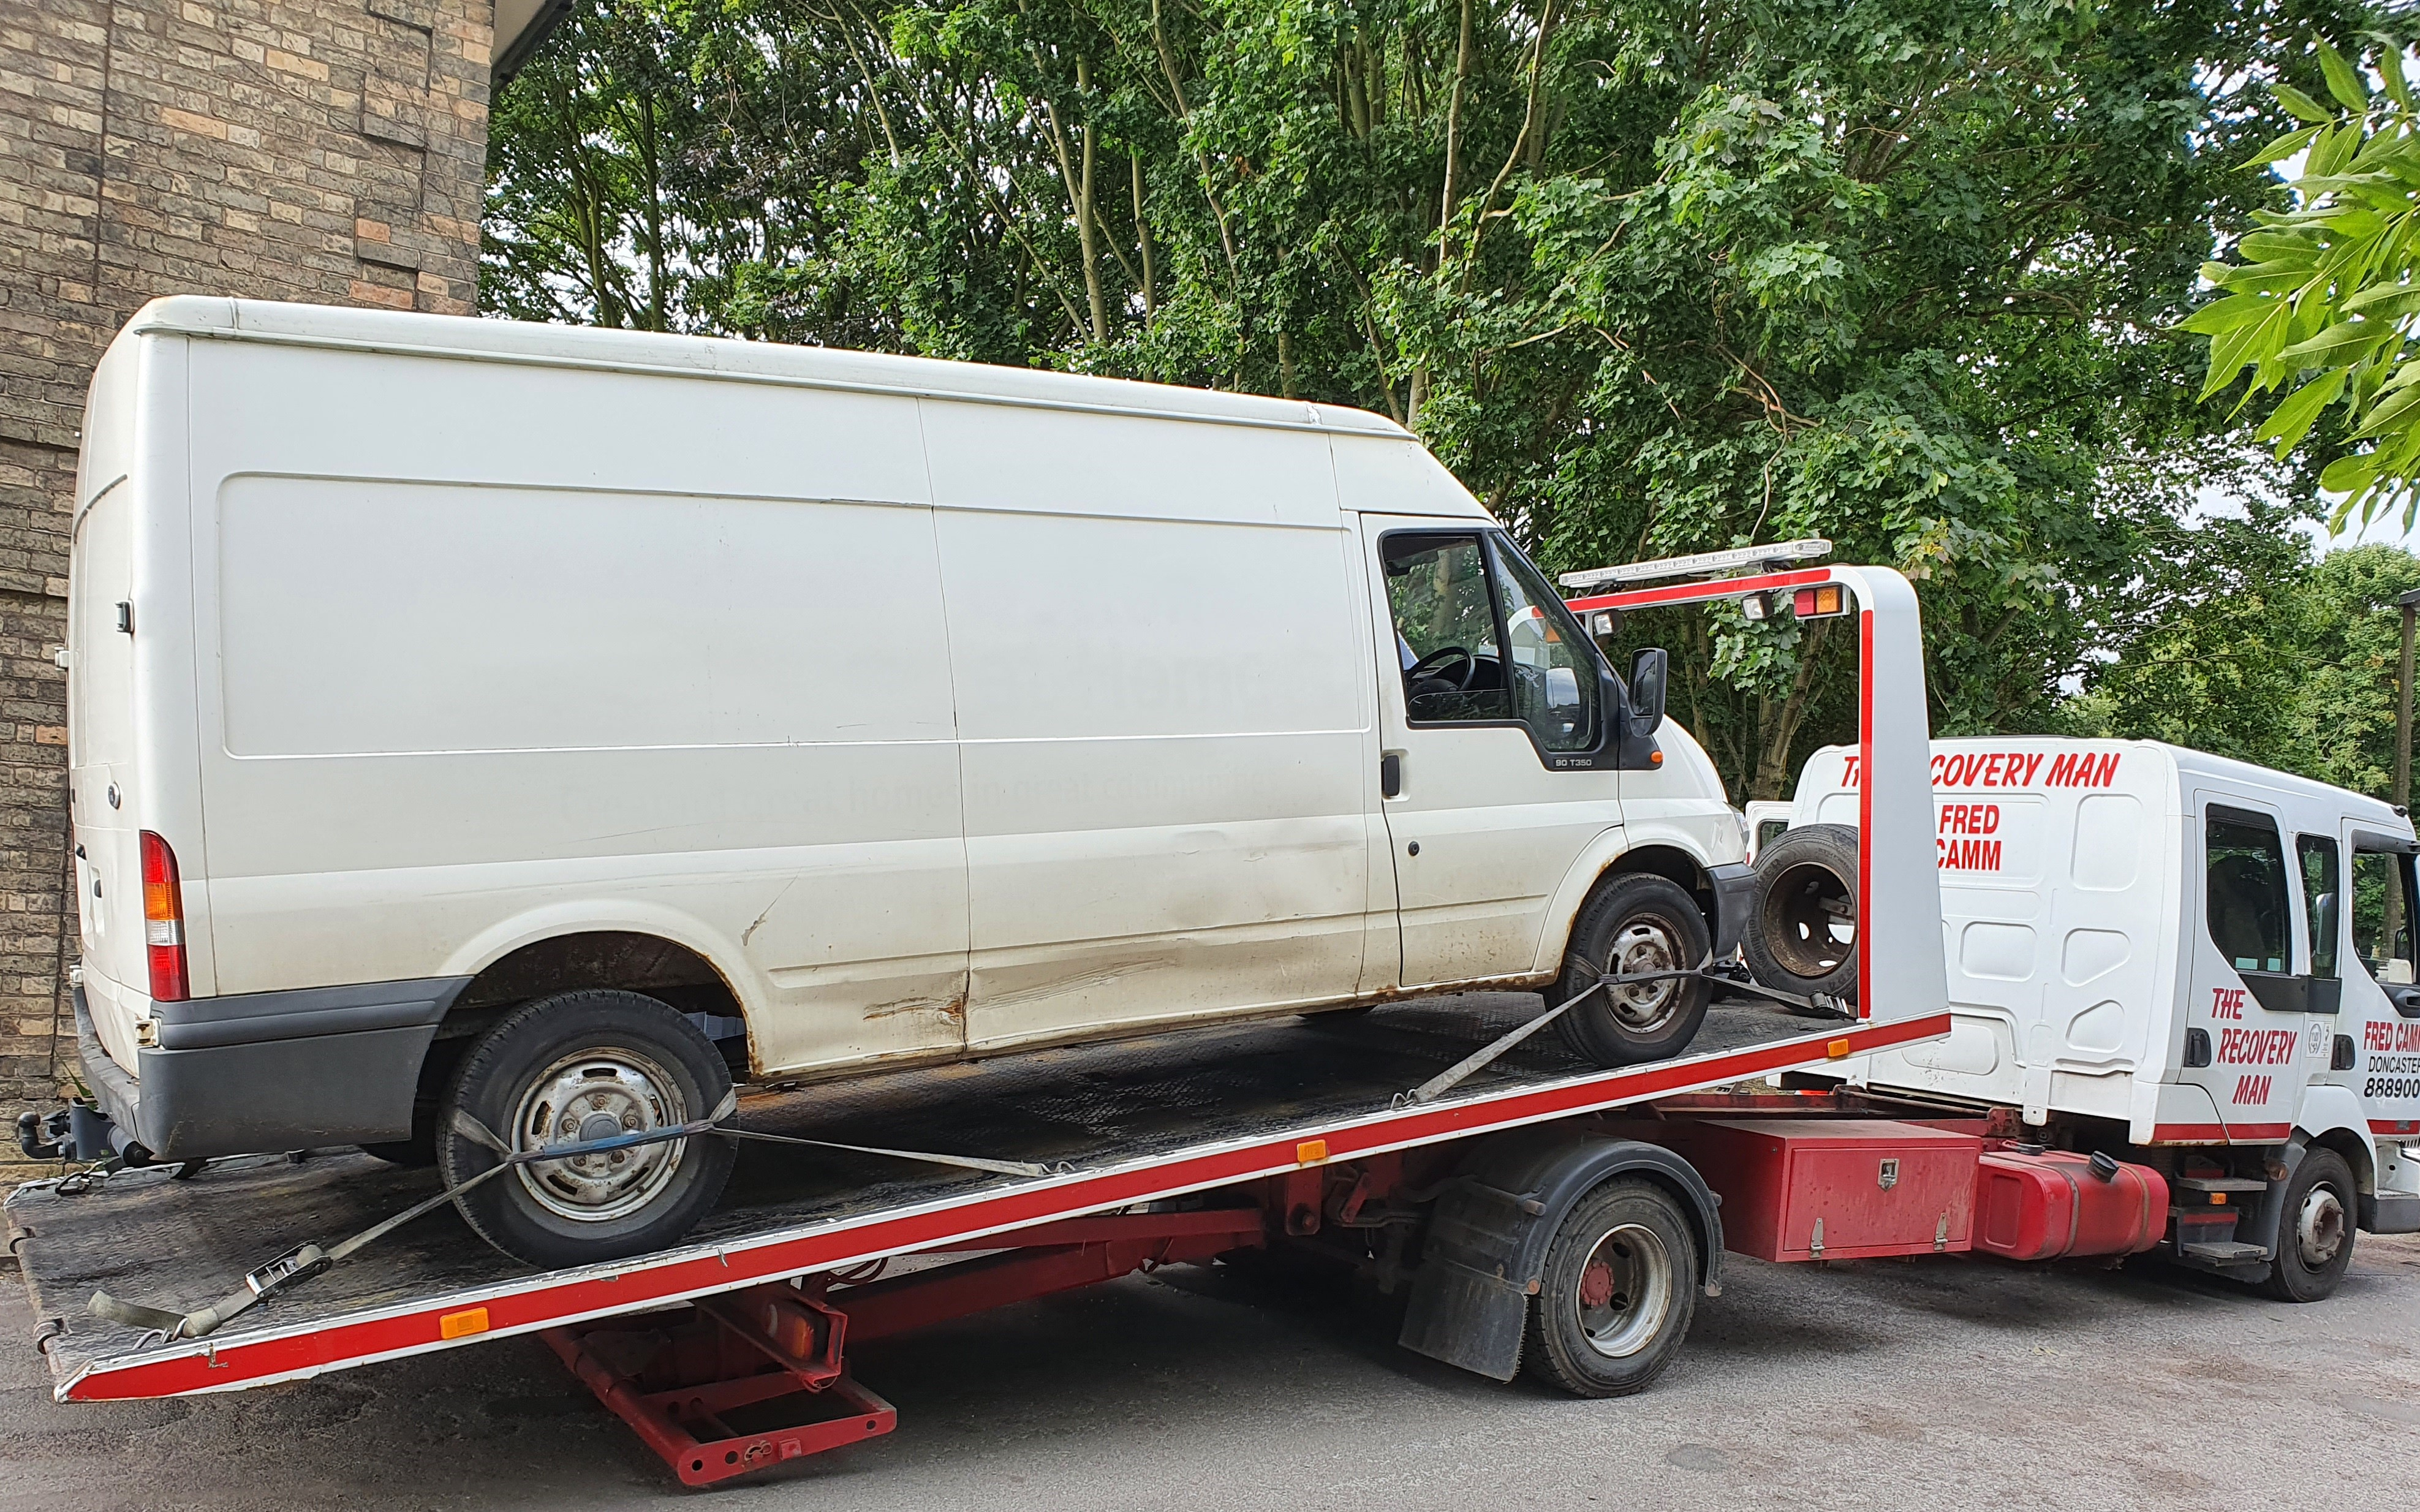 Council seizes van used in Fly tip